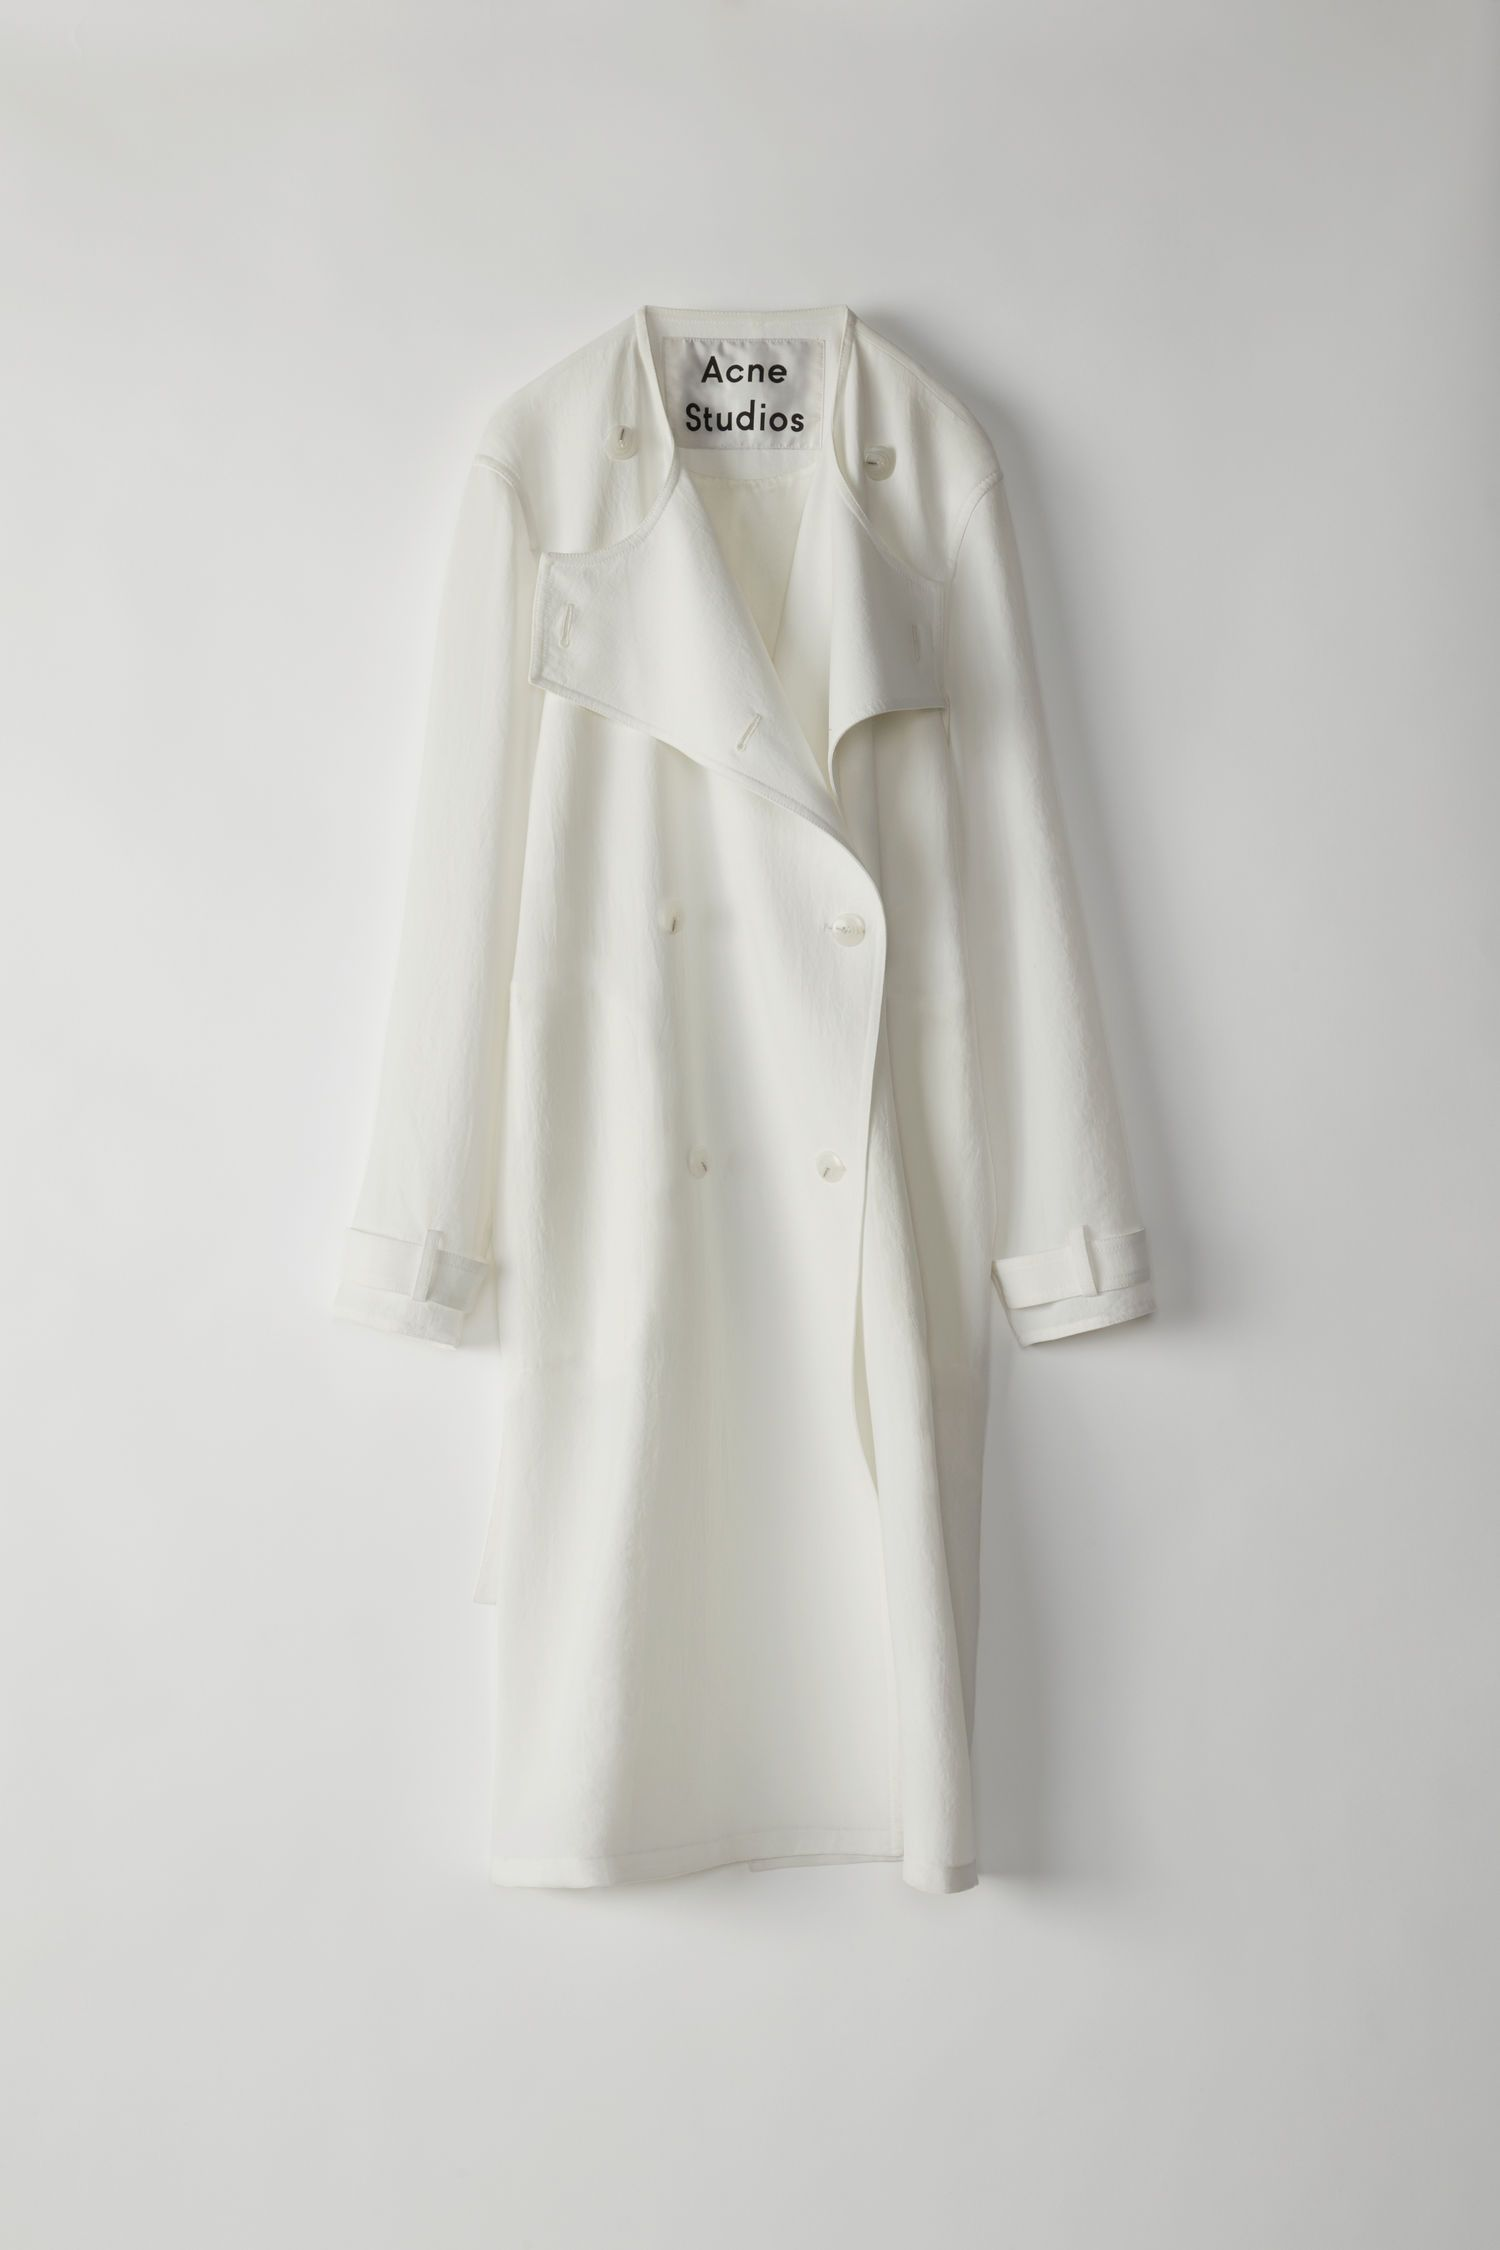 ae13f125153935 Acne Studios - Anghelica Twill white trench coat | COATS/JACKETS in ...